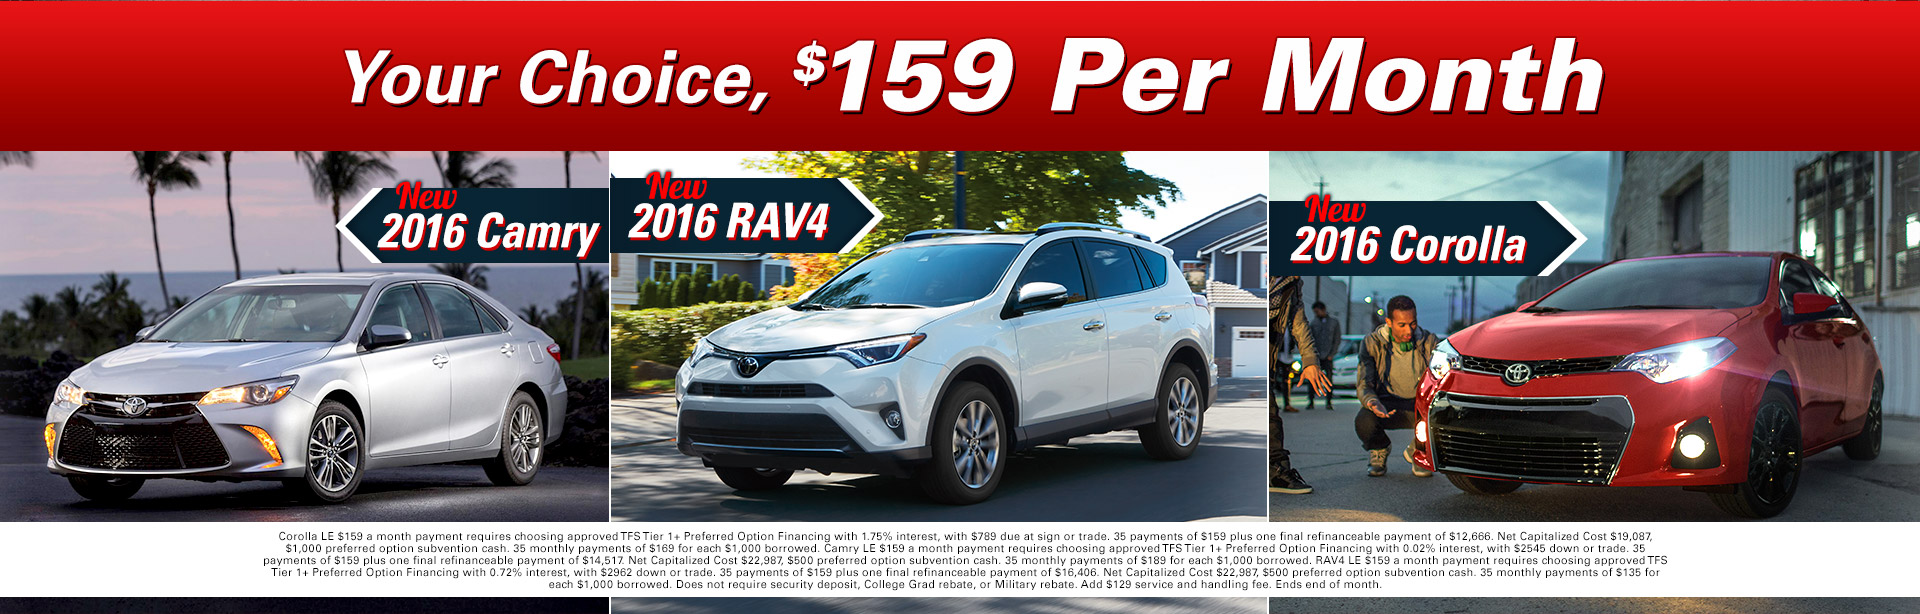 Toyota Rav4 At J Pauley Toyota Fort Smith Ar New 2016